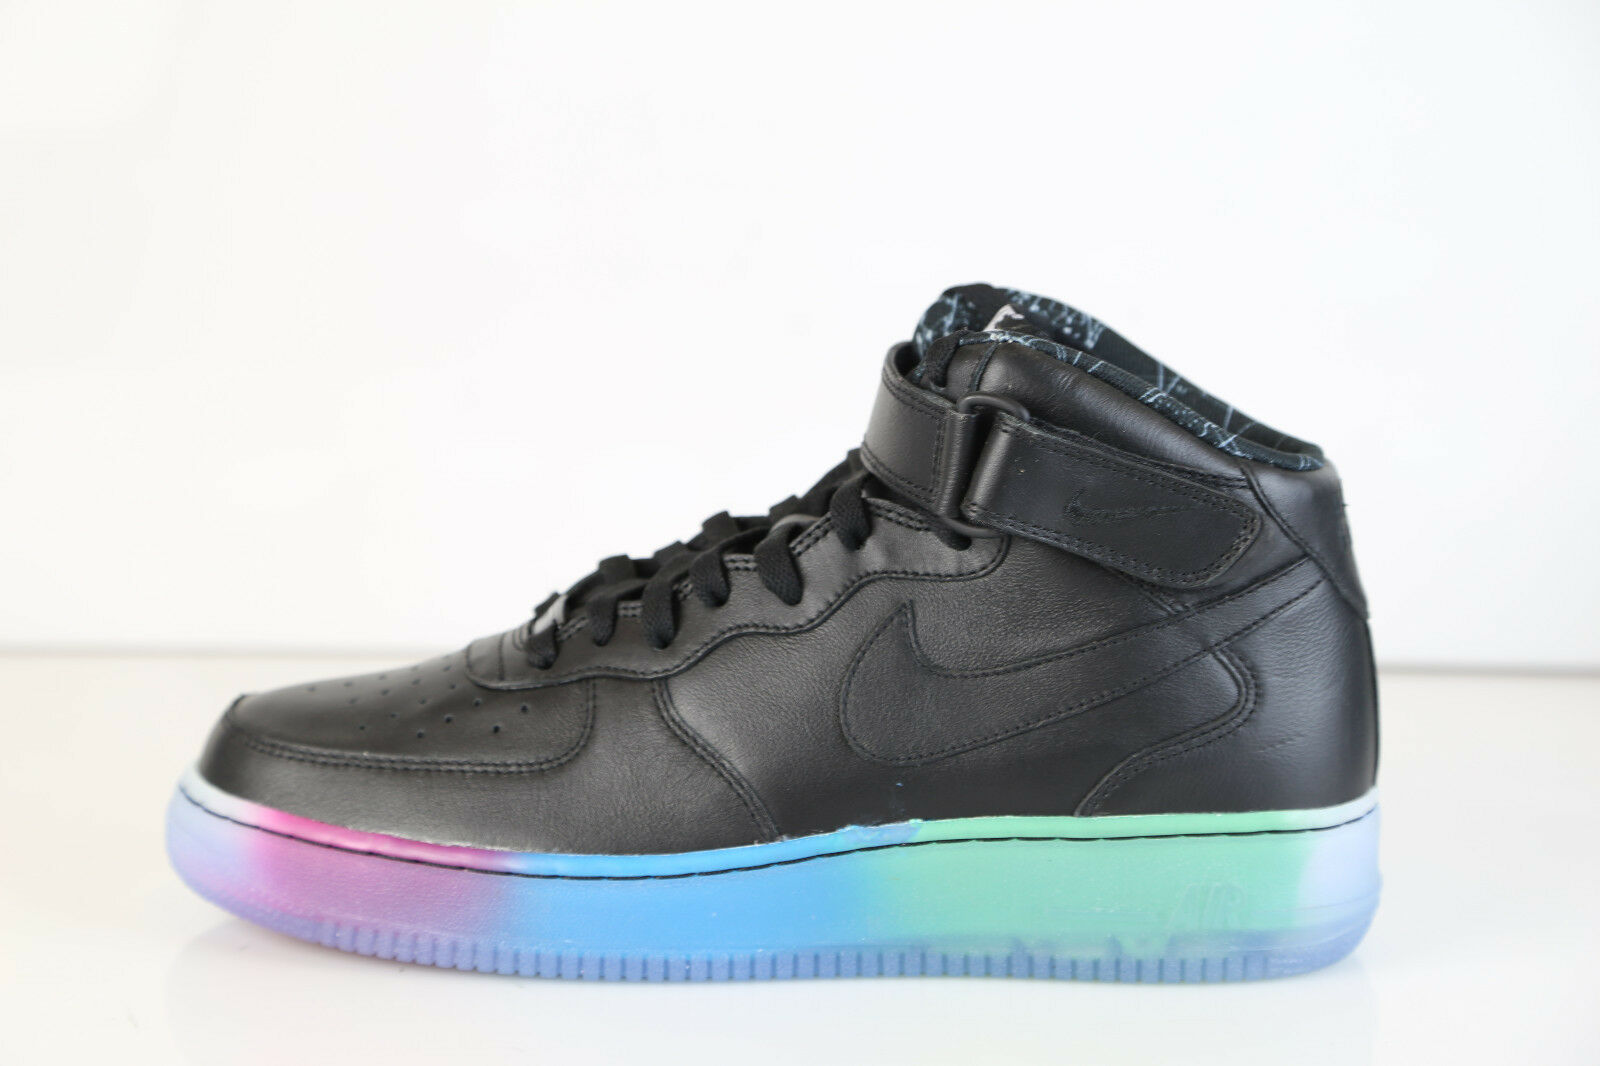 Nike Air Force 1 Mid Premium iD All Star Noir Multi Color Fade Sole 10 af1 as